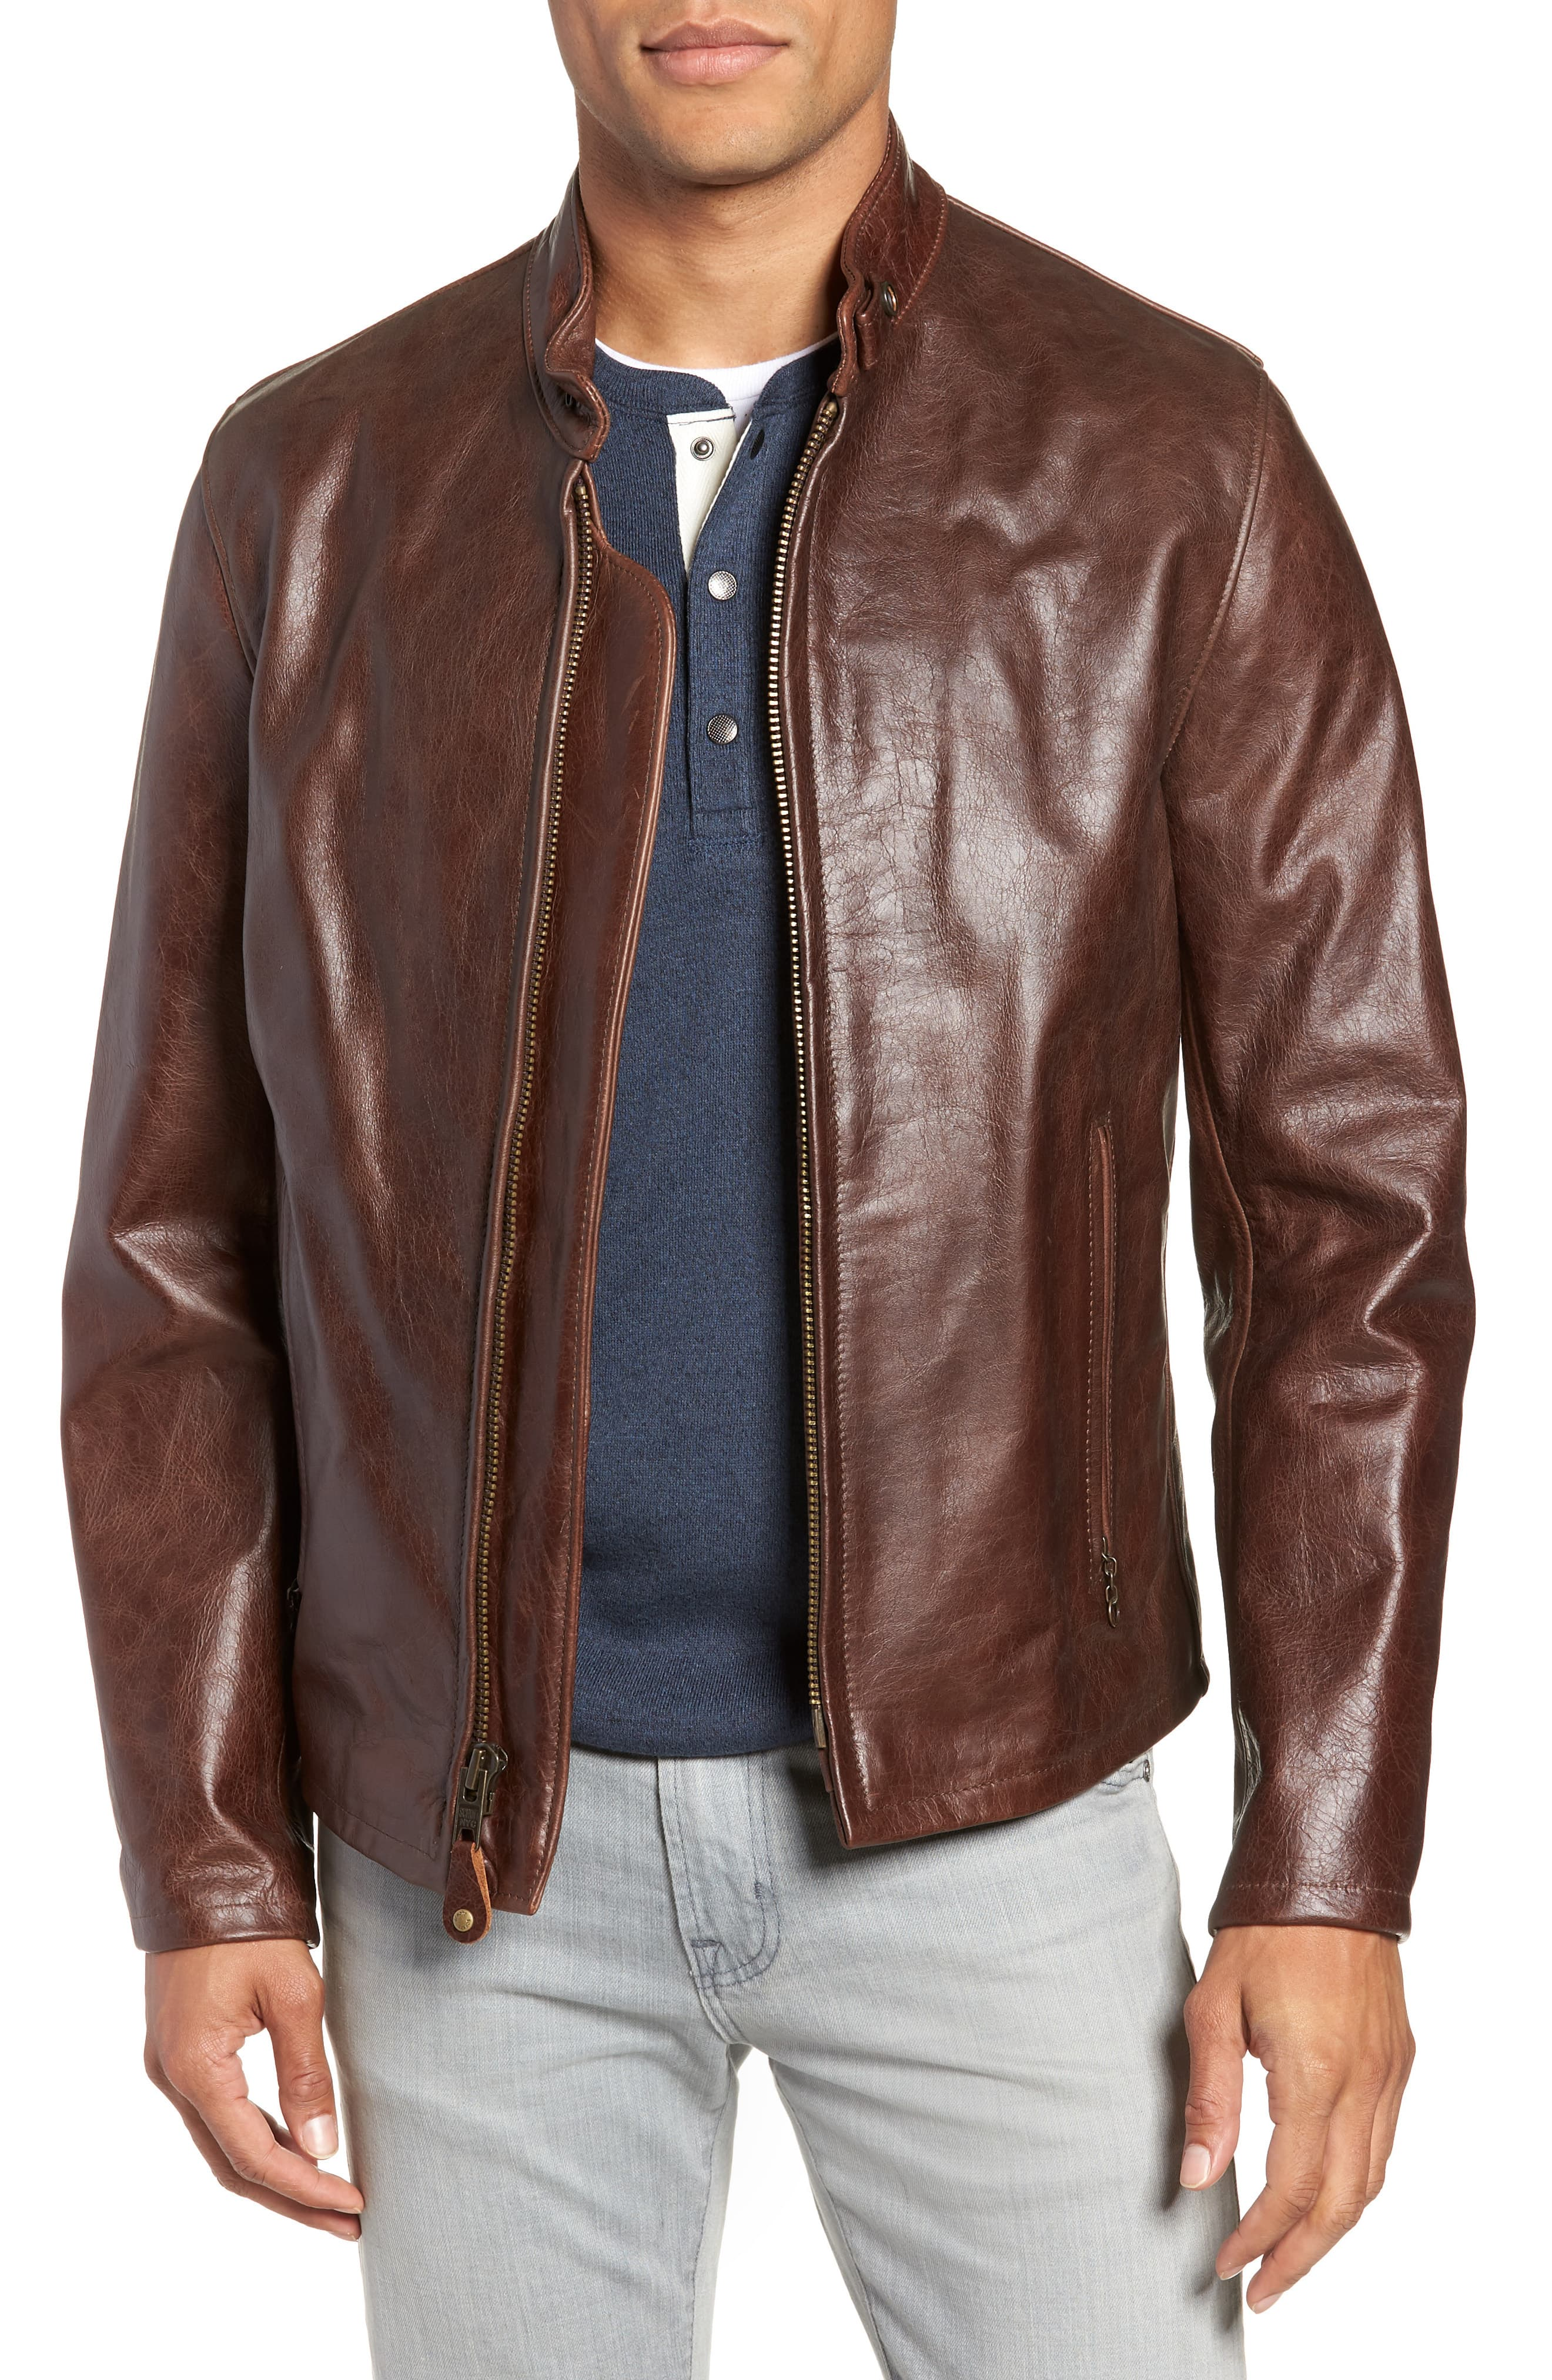 Schott Nyc Cafe Racer Waxy Cowhide Leather Jacket Nordstrom In 2021 Leather Jacket Men Style Brown Leather Jacket Men Leather Jacket [ 4048 x 2640 Pixel ]